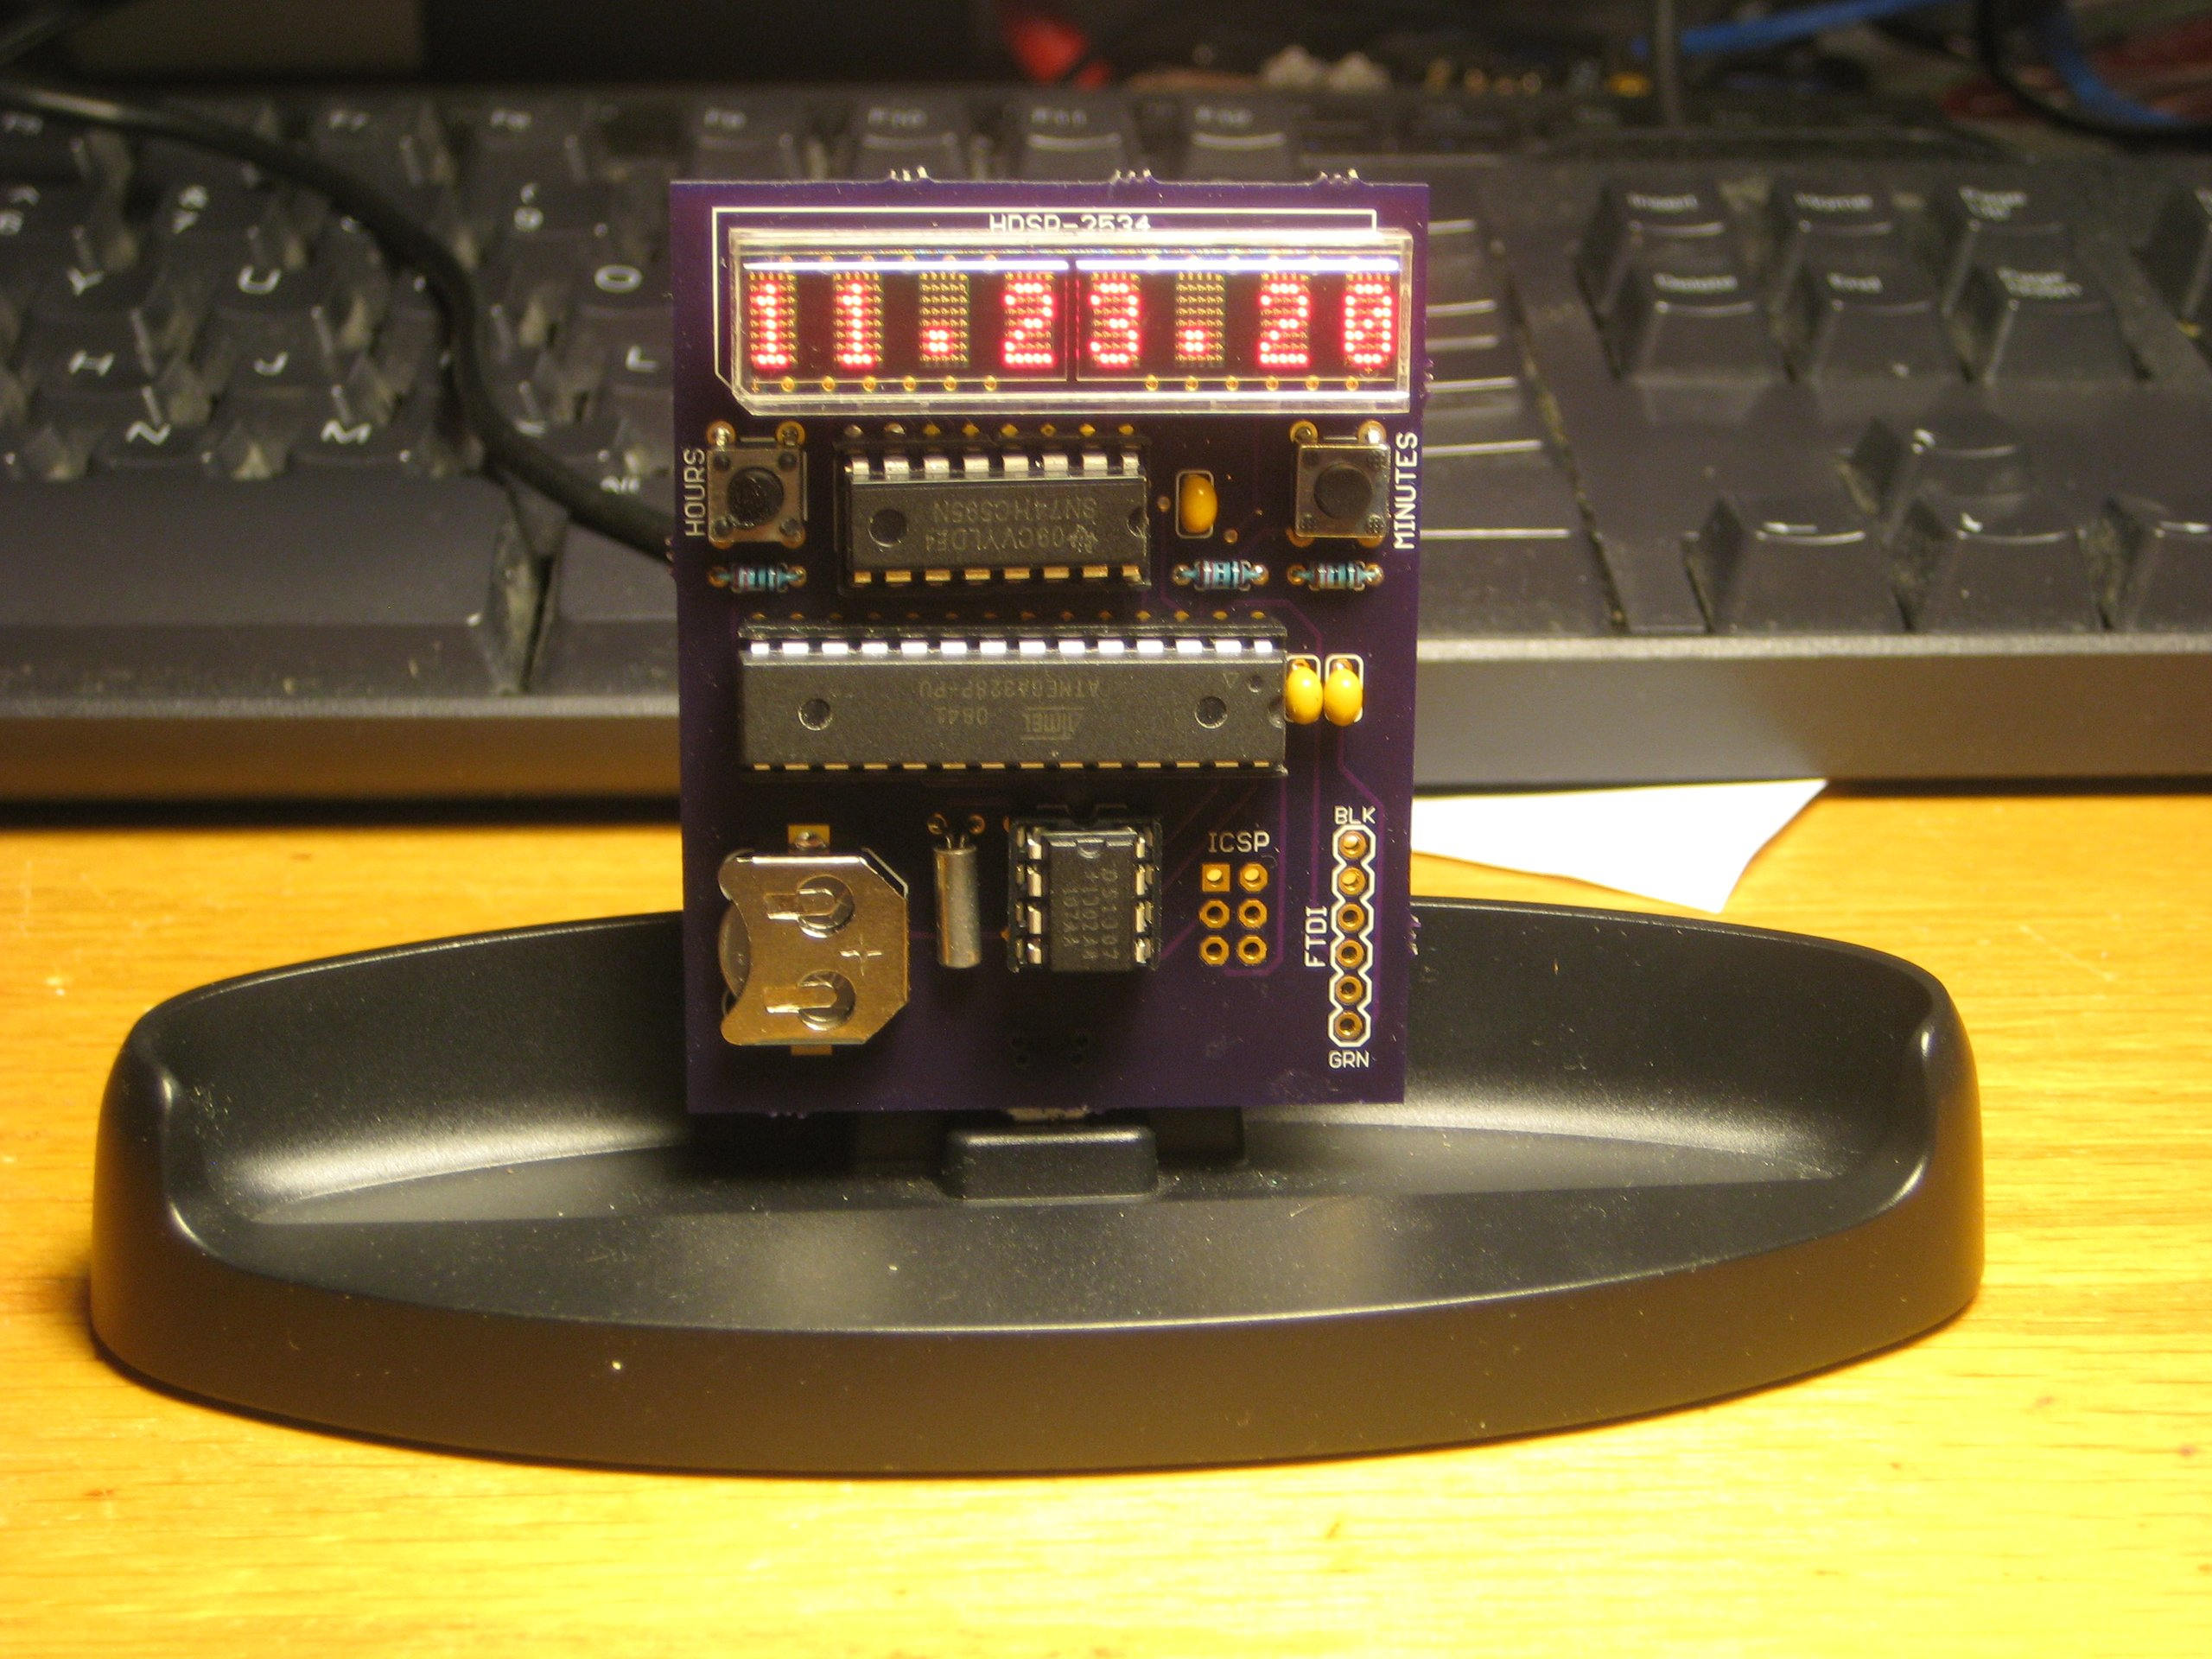 clock kit with hdsp 2534 led matrix display from florinc on tindie. Black Bedroom Furniture Sets. Home Design Ideas